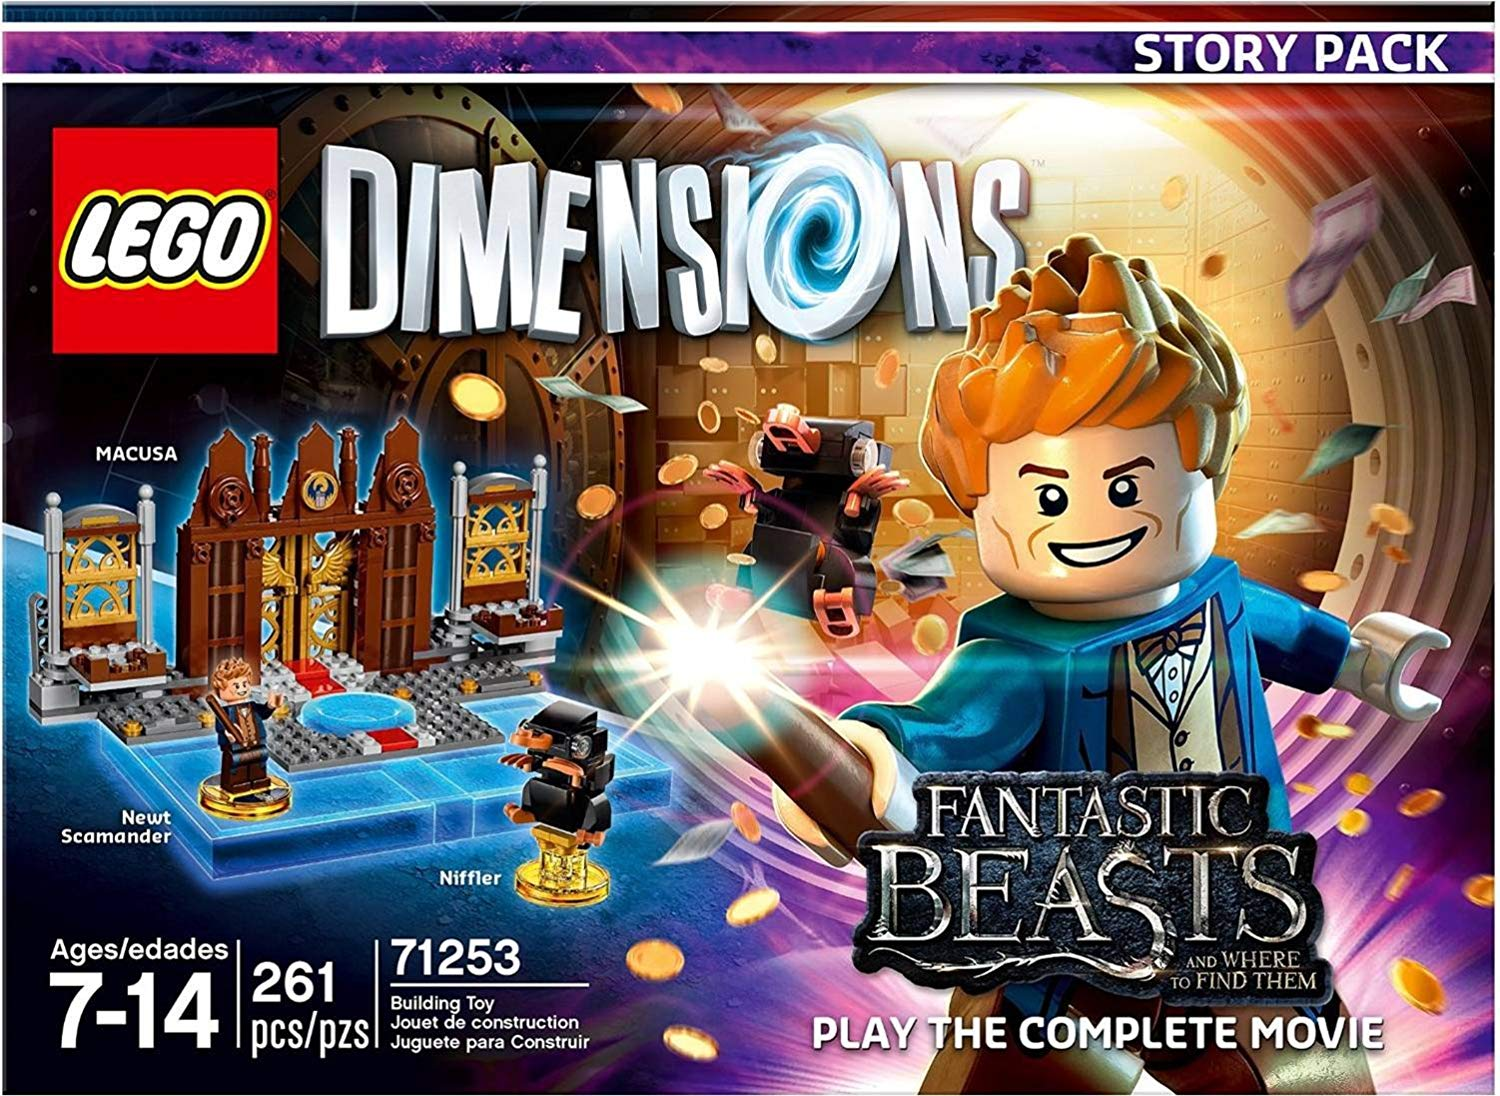 Fantastic Beasts and Where to Find Them Story Pack (71253)